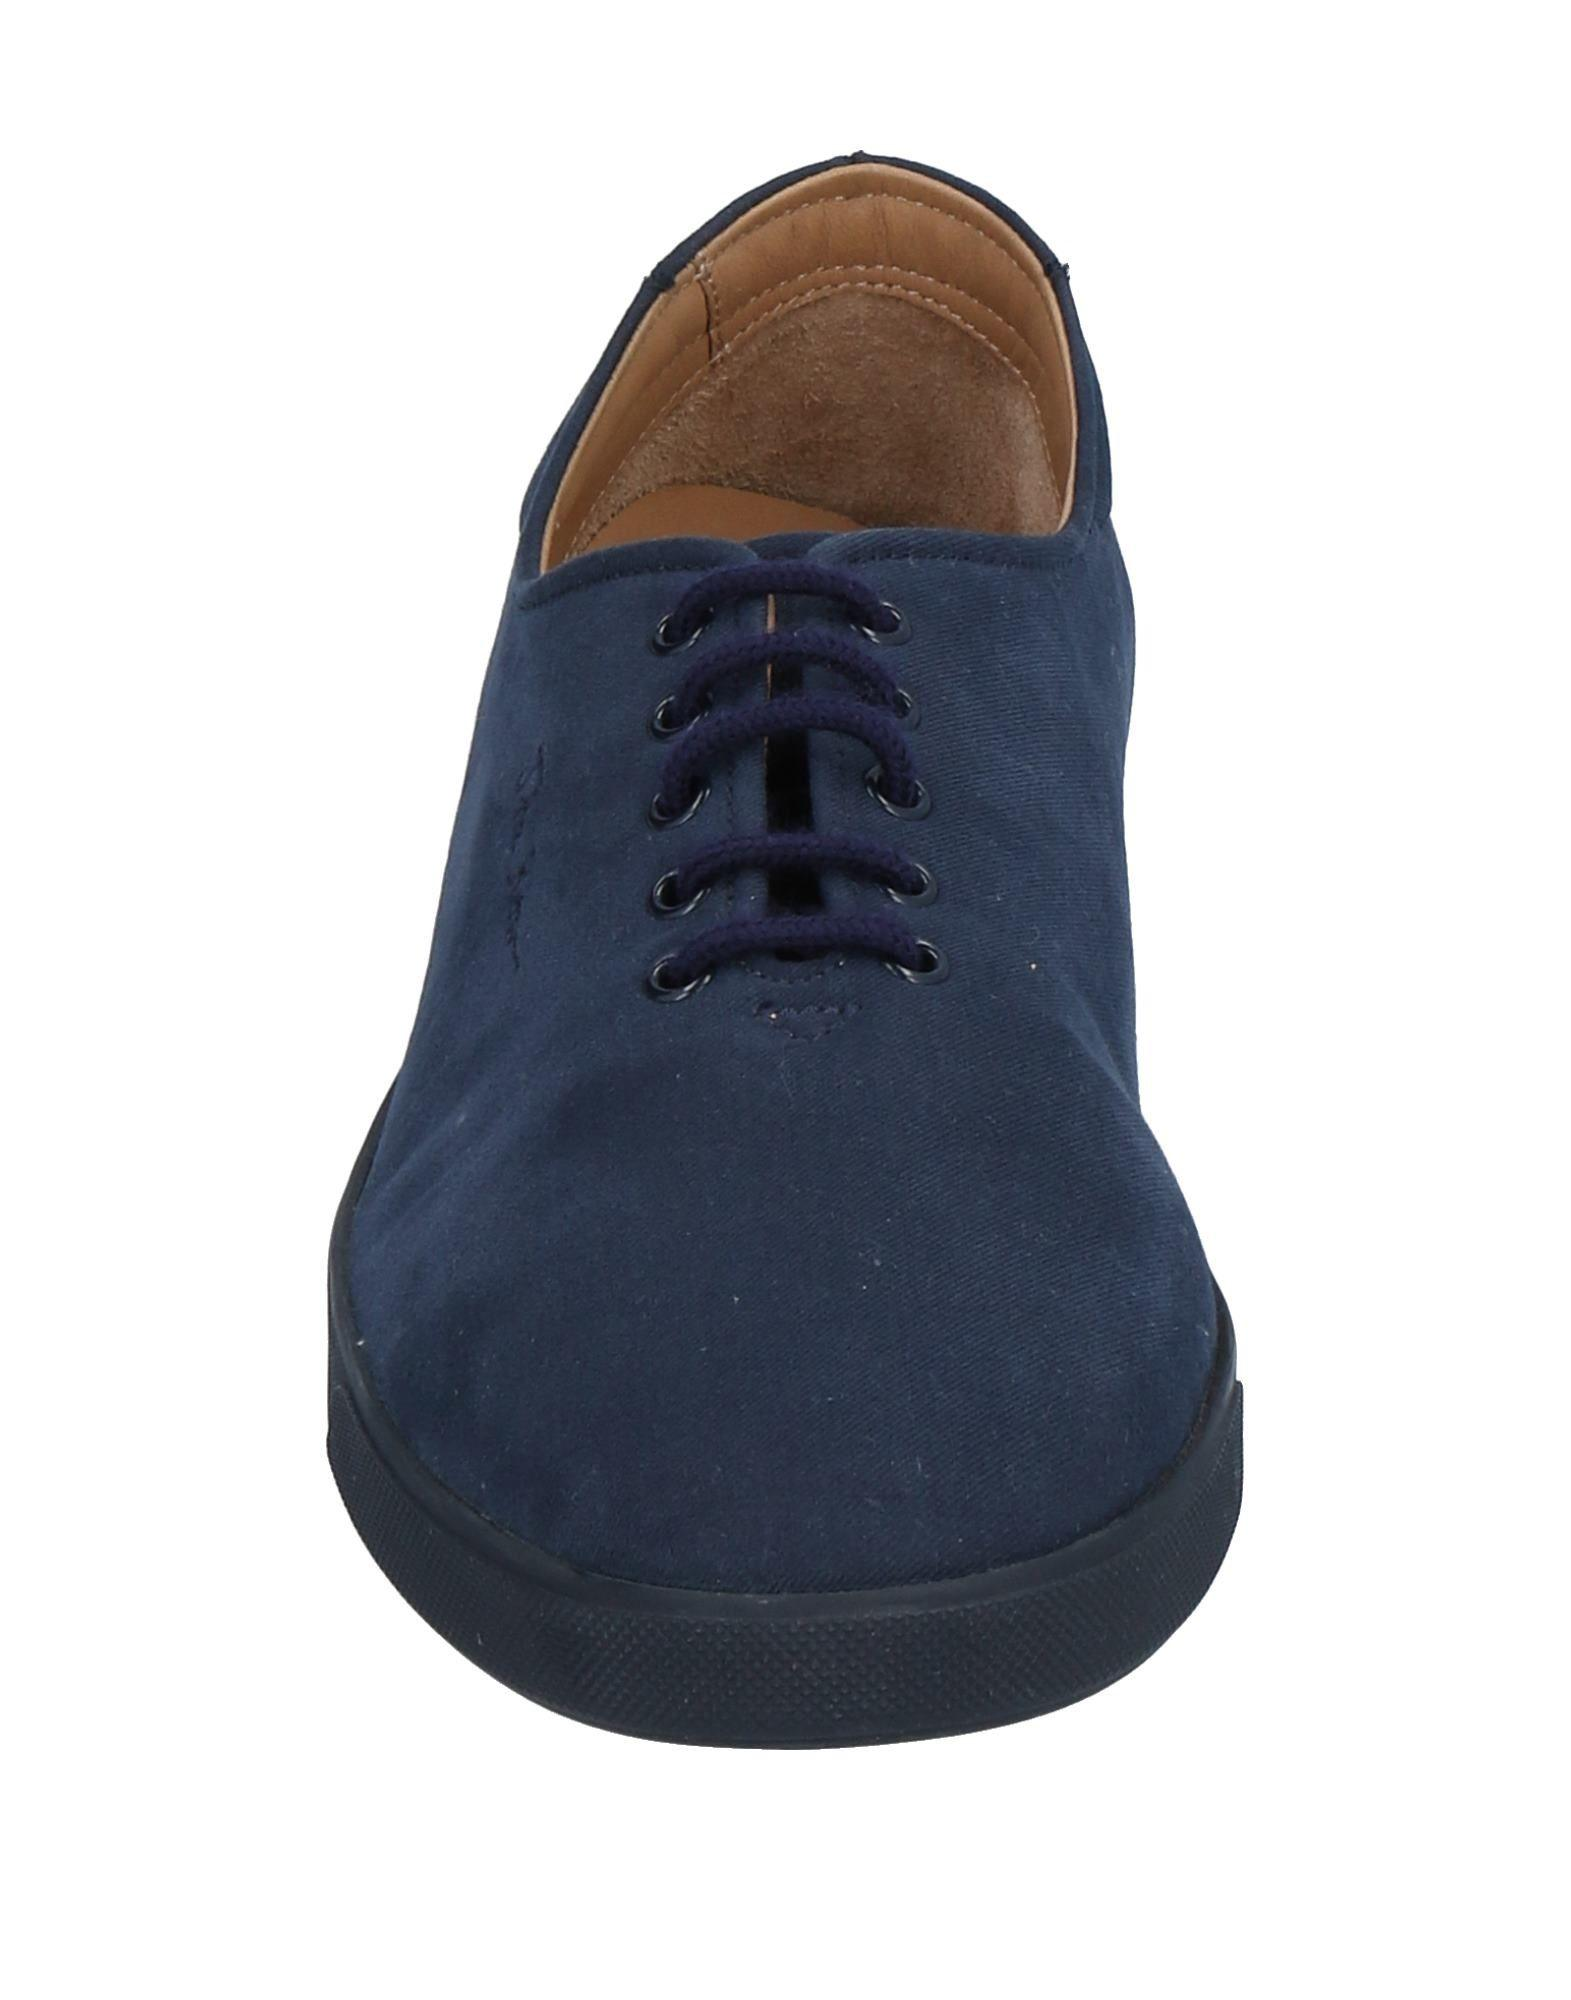 The Row Leather Low-tops & Sneakers in Dark Blue (Blue)